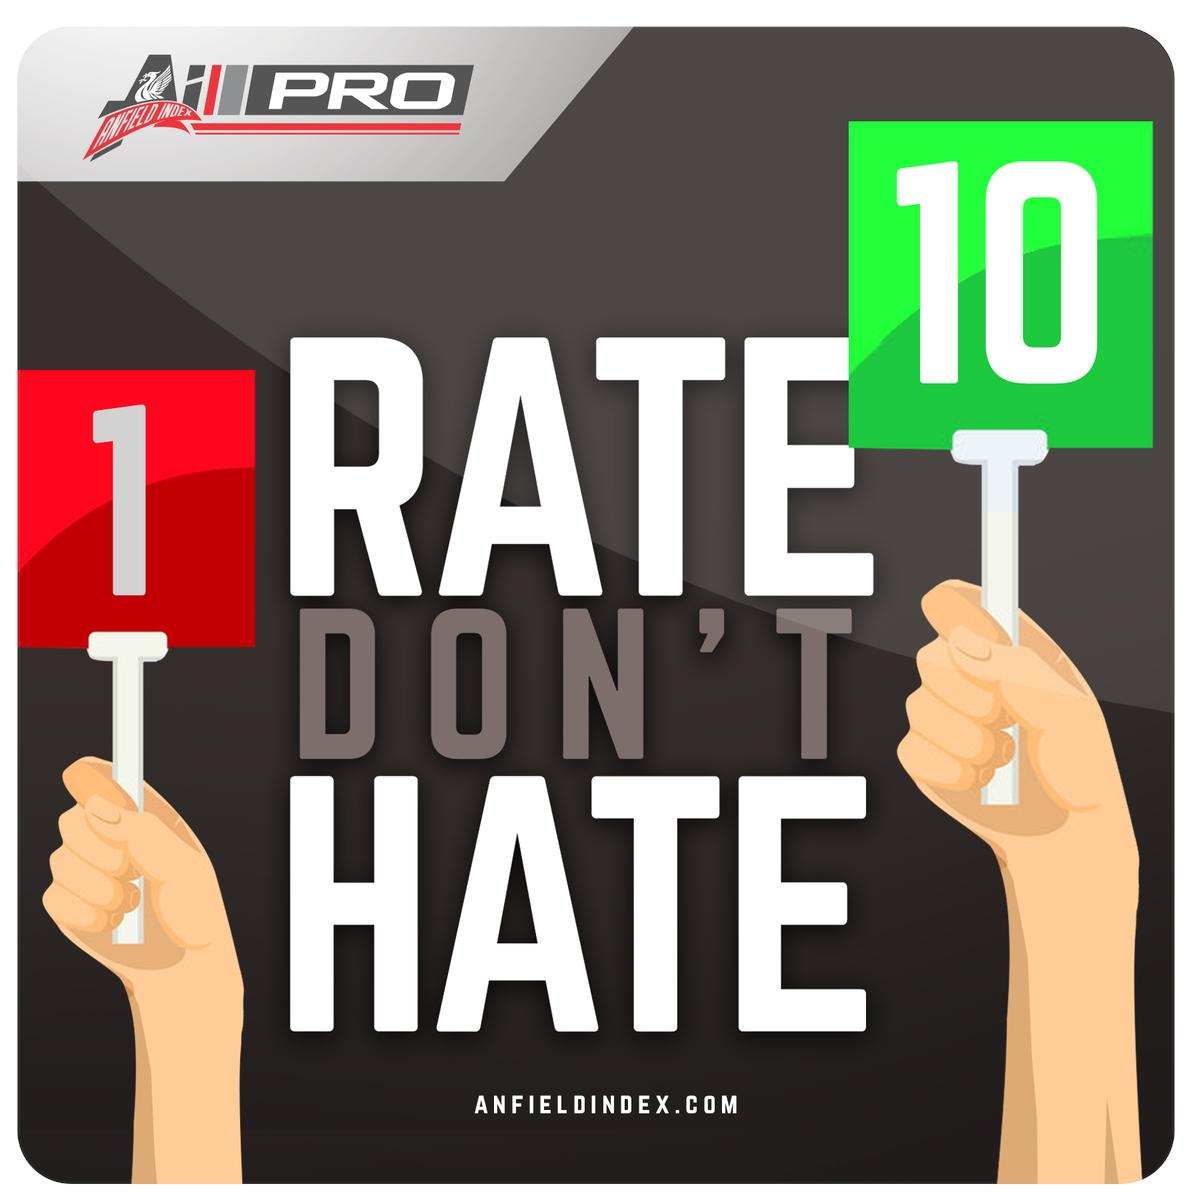 #RateDontHate: #LIVBOU  @The_KYLN& @TomHolmes19 discuss:  🔴Midfield brilliance 🔴Forward domination 🔴The buzz is back!  🎧 Listen for FREE via @AnfieldIndexPro's 7 Day Trial http://goo.gl/GDHT5E